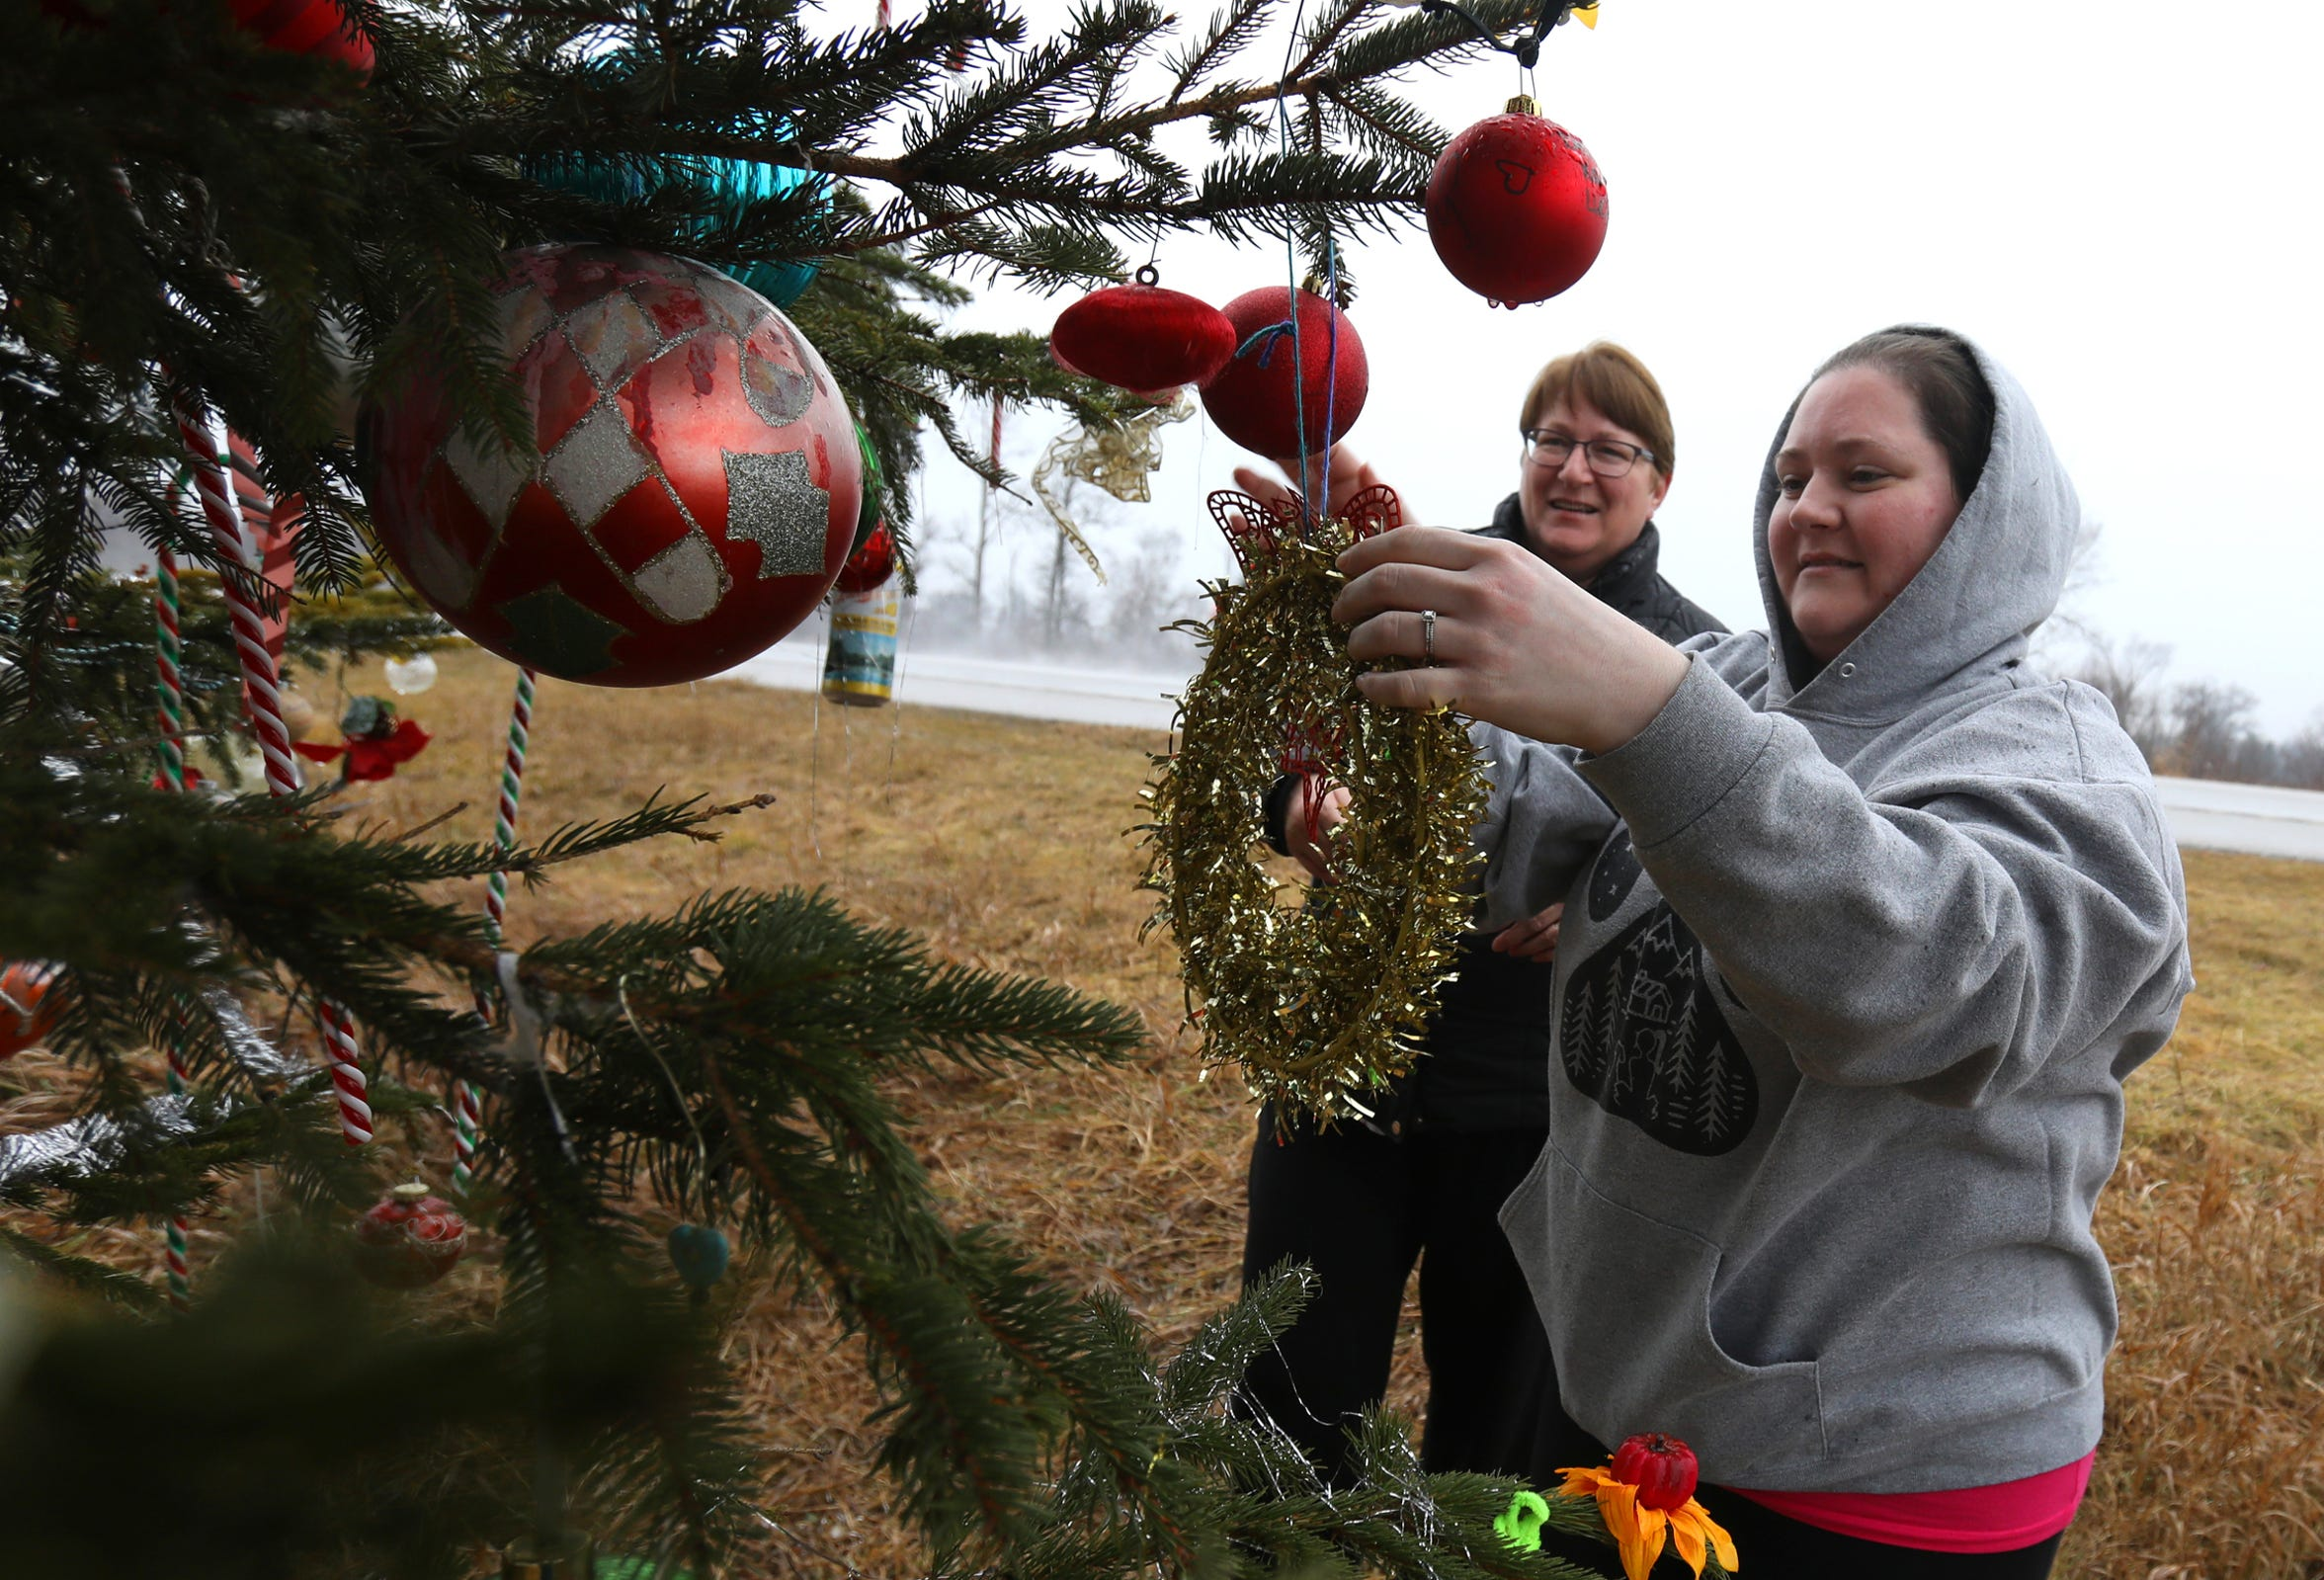 Laura Bigger of Twin Lakes, left, and her daughter Michelle Walters pulled over along I-75 on Dec. 20, 2018 to add plastic candy canes and a gold wreath to a Christmas tree in Moffatt Township.